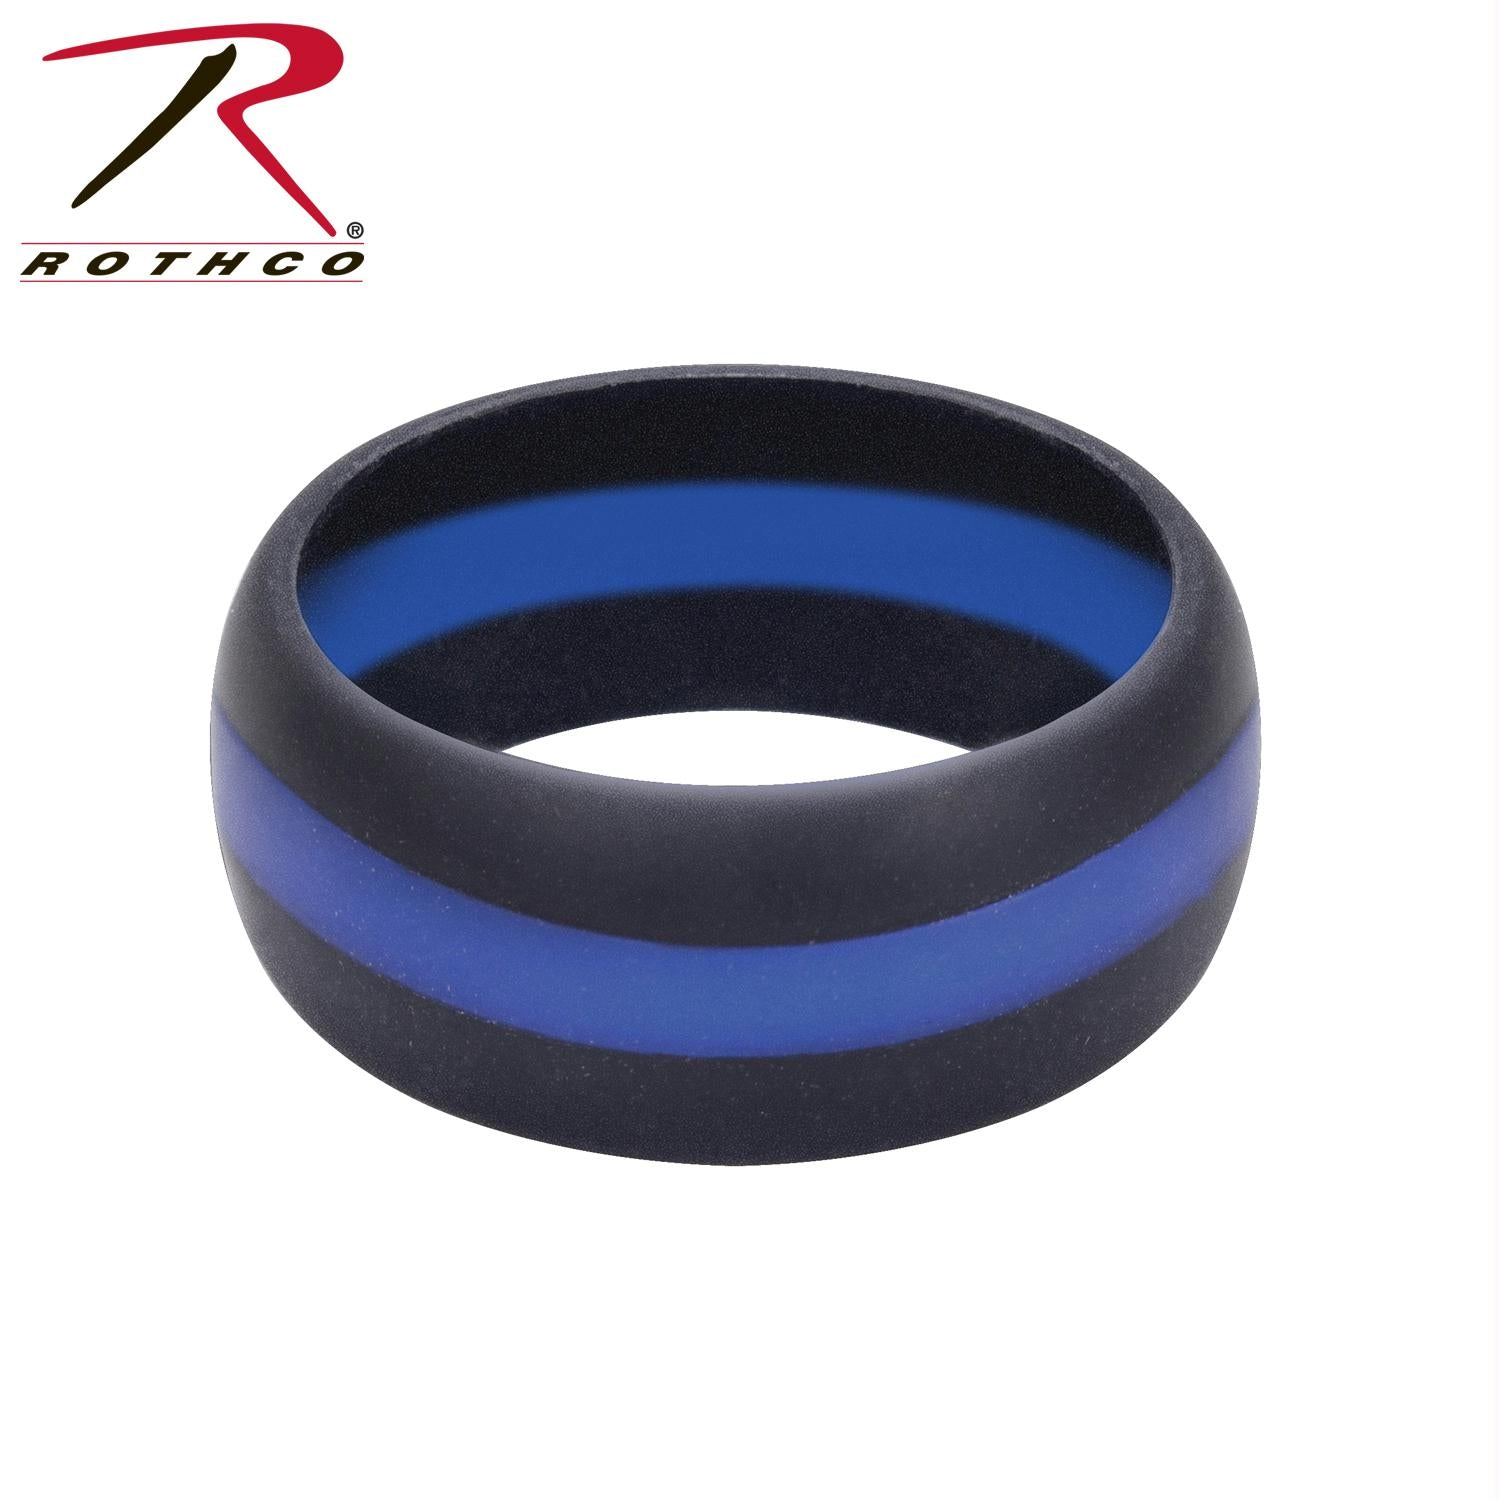 Rothco Thin Blue Line Silicone Ring - 12